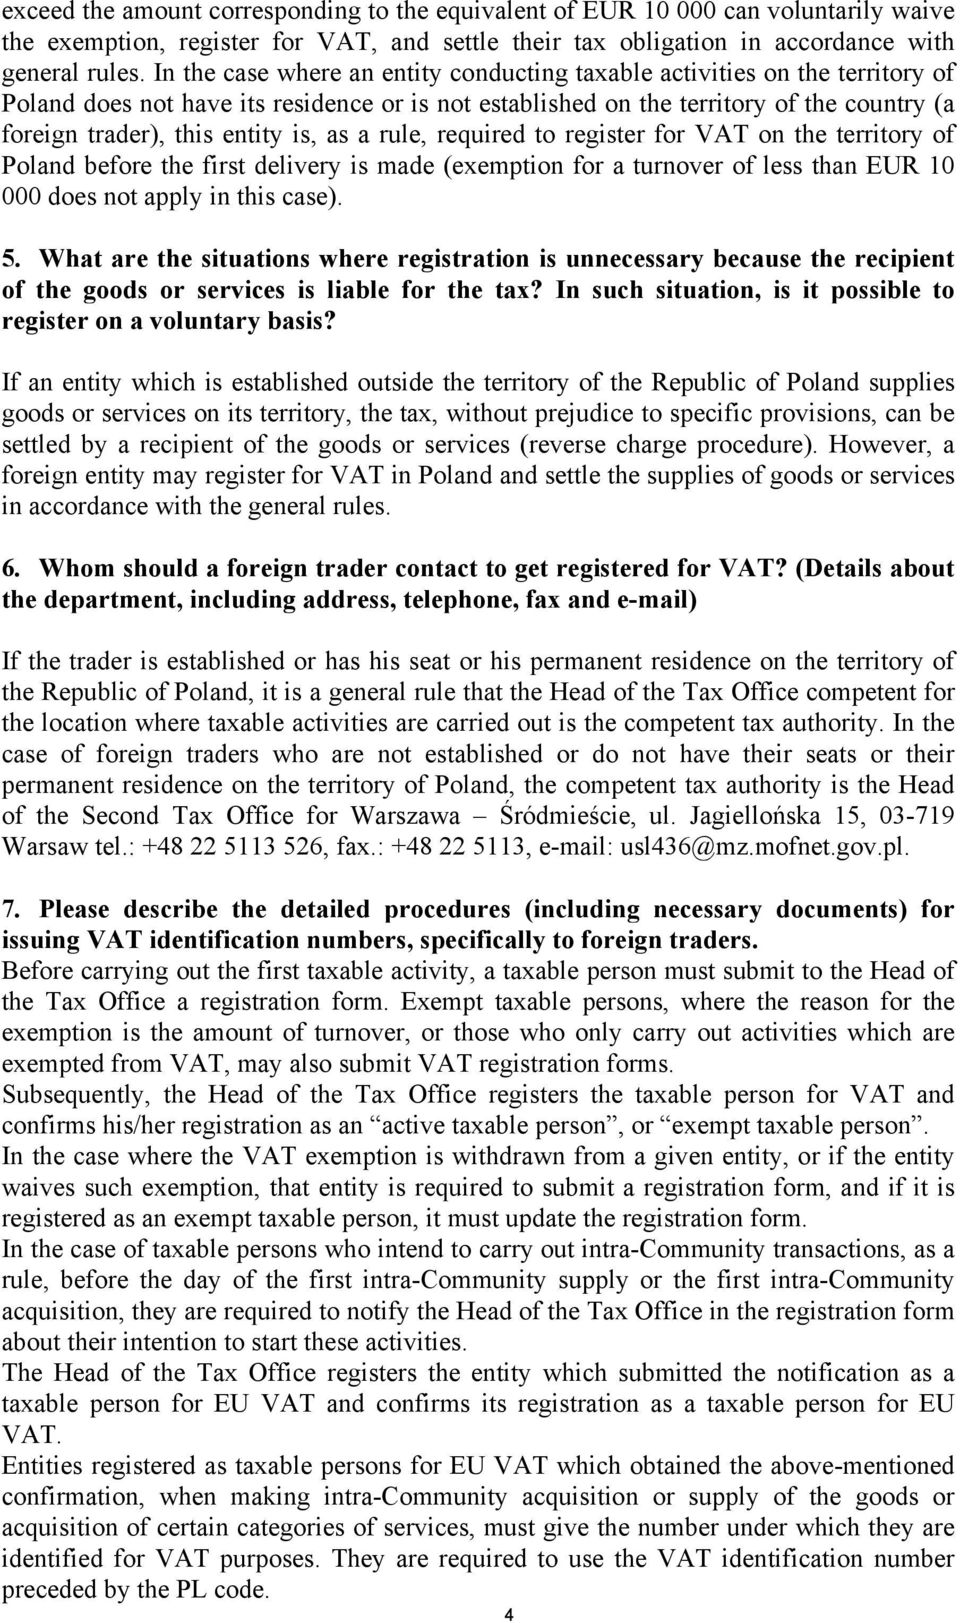 is, as a rule, required to register for VAT on the territory of Poland before the first delivery is made (exemption for a turnover of less than EUR 10 000 does not apply in this case). 5.